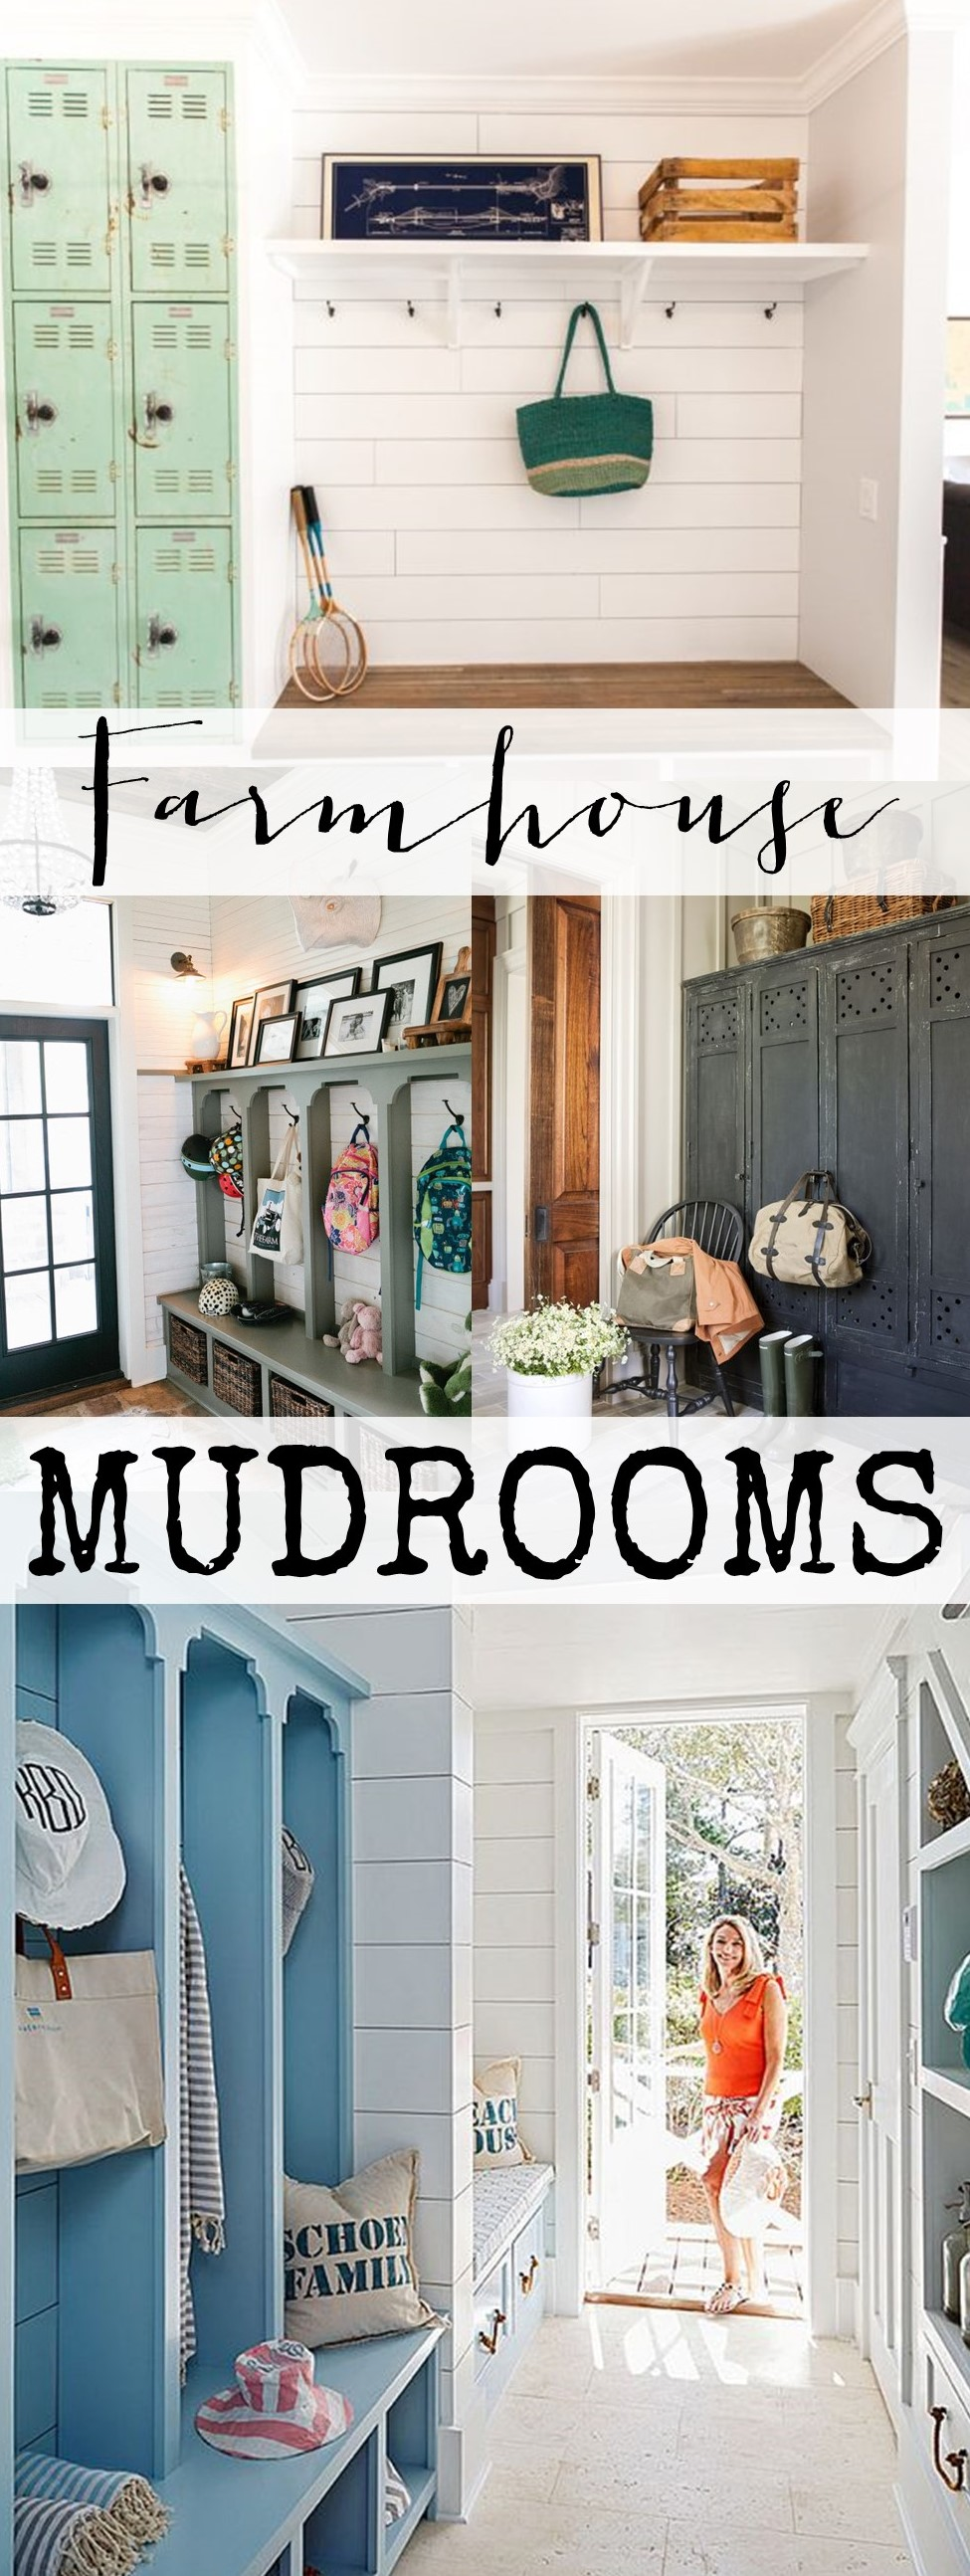 Farmhouse Mudrooms - House of Hargrove on farmhouse exterior ideas, farmhouse kitchen ideas, farmhouse porch ideas, farmhouse roof ideas, farmhouse decorating ideas, farmhouse backyard ideas, farmhouse design ideas, farmhouse office ideas, farmhouse ceiling ideas, farmhouse plans with mudroom, farmhouse great room ideas, farmhouse storage ideas, farmhouse craft ideas, farmhouse garden ideas, farmhouse foyer ideas, farmhouse furniture ideas, farmhouse powder room ideas, farmhouse trim ideas, farmhouse paint ideas, farmhouse style ideas,